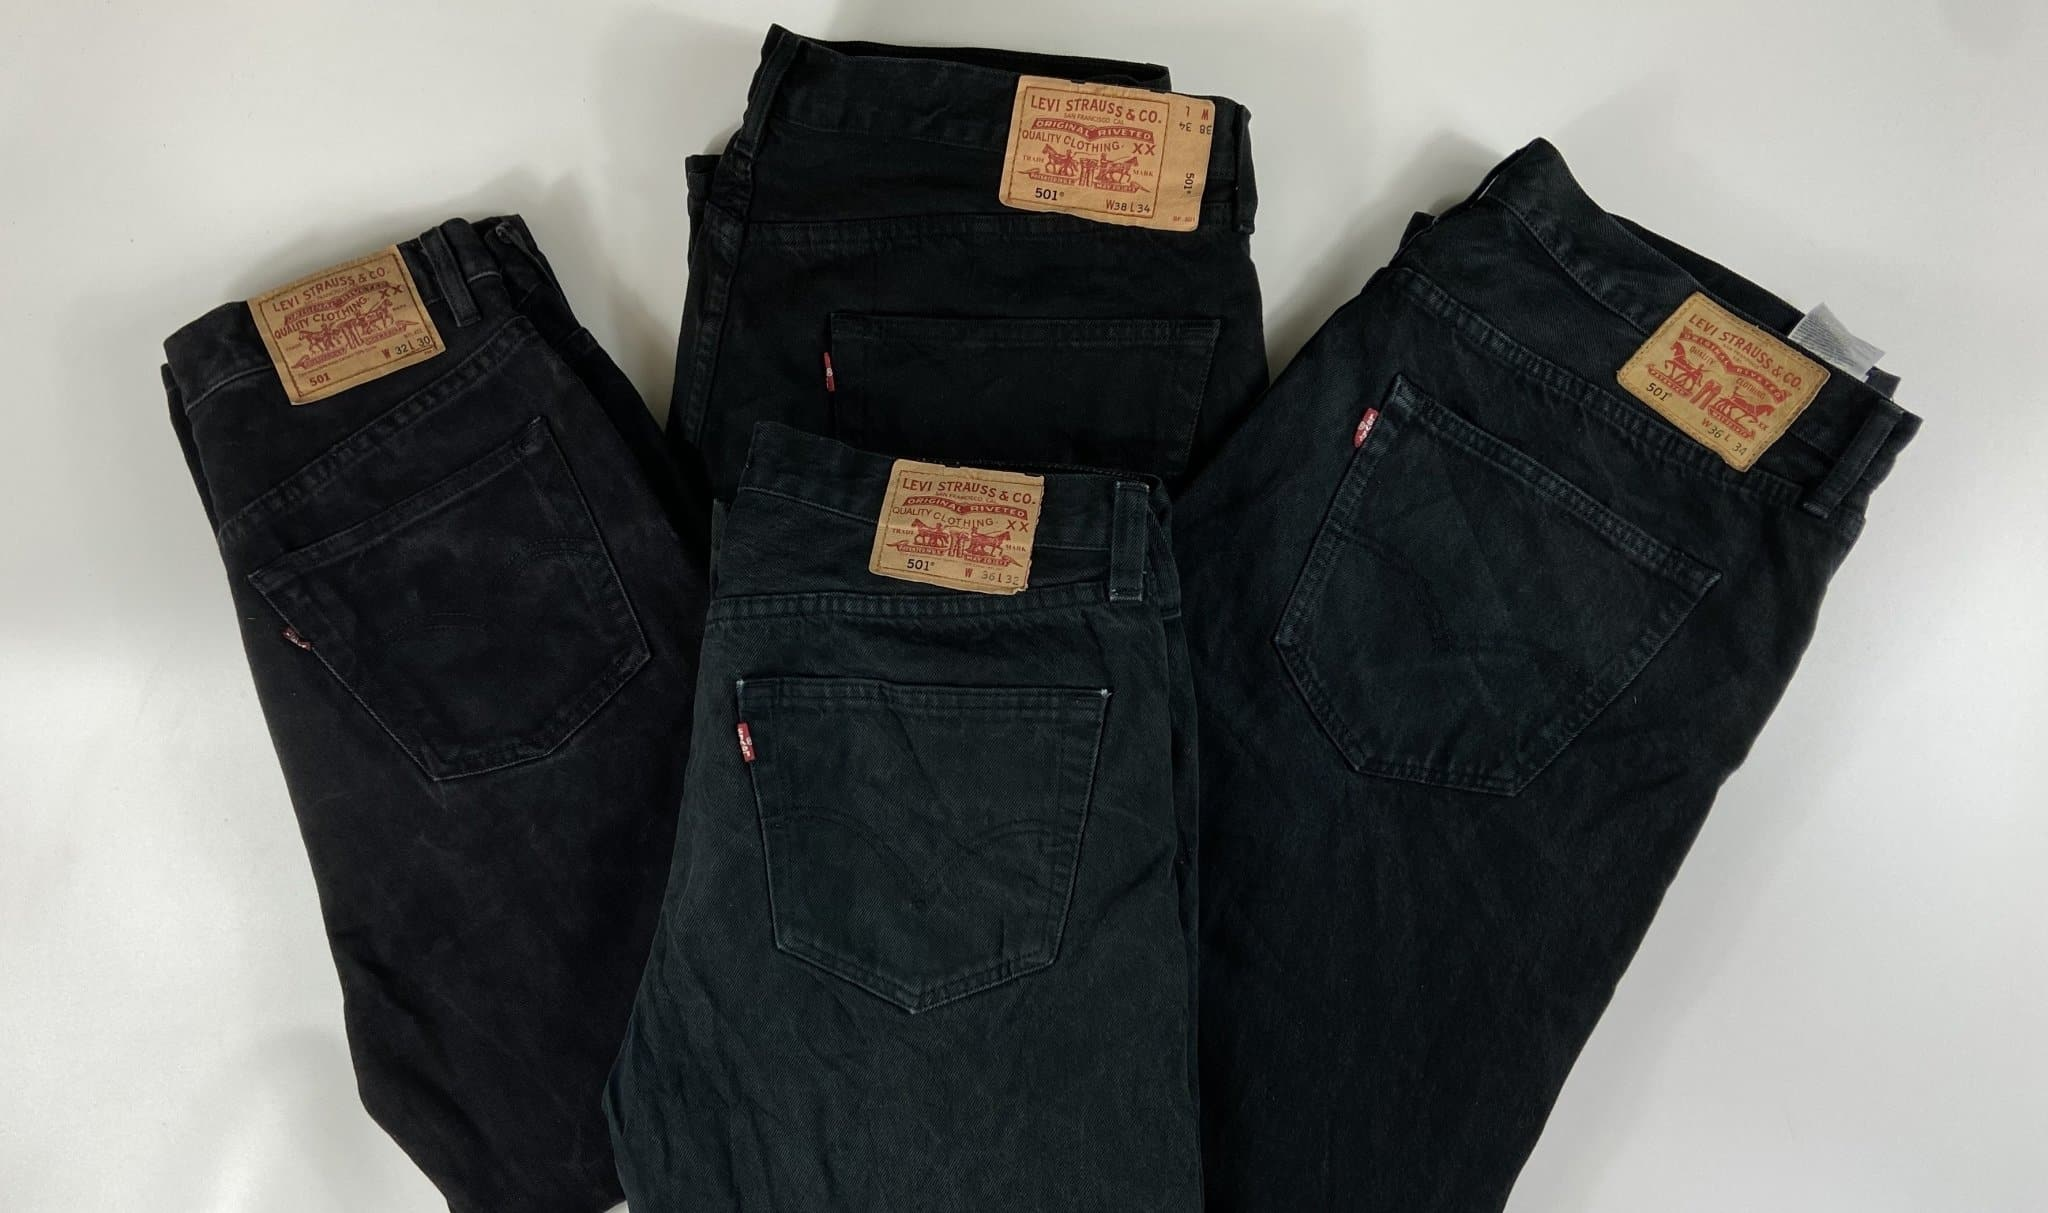 Vintage Levi's Classic 501 Jeans Dark Black/Grey W34 L32 (K5) - Discounted Deals UK